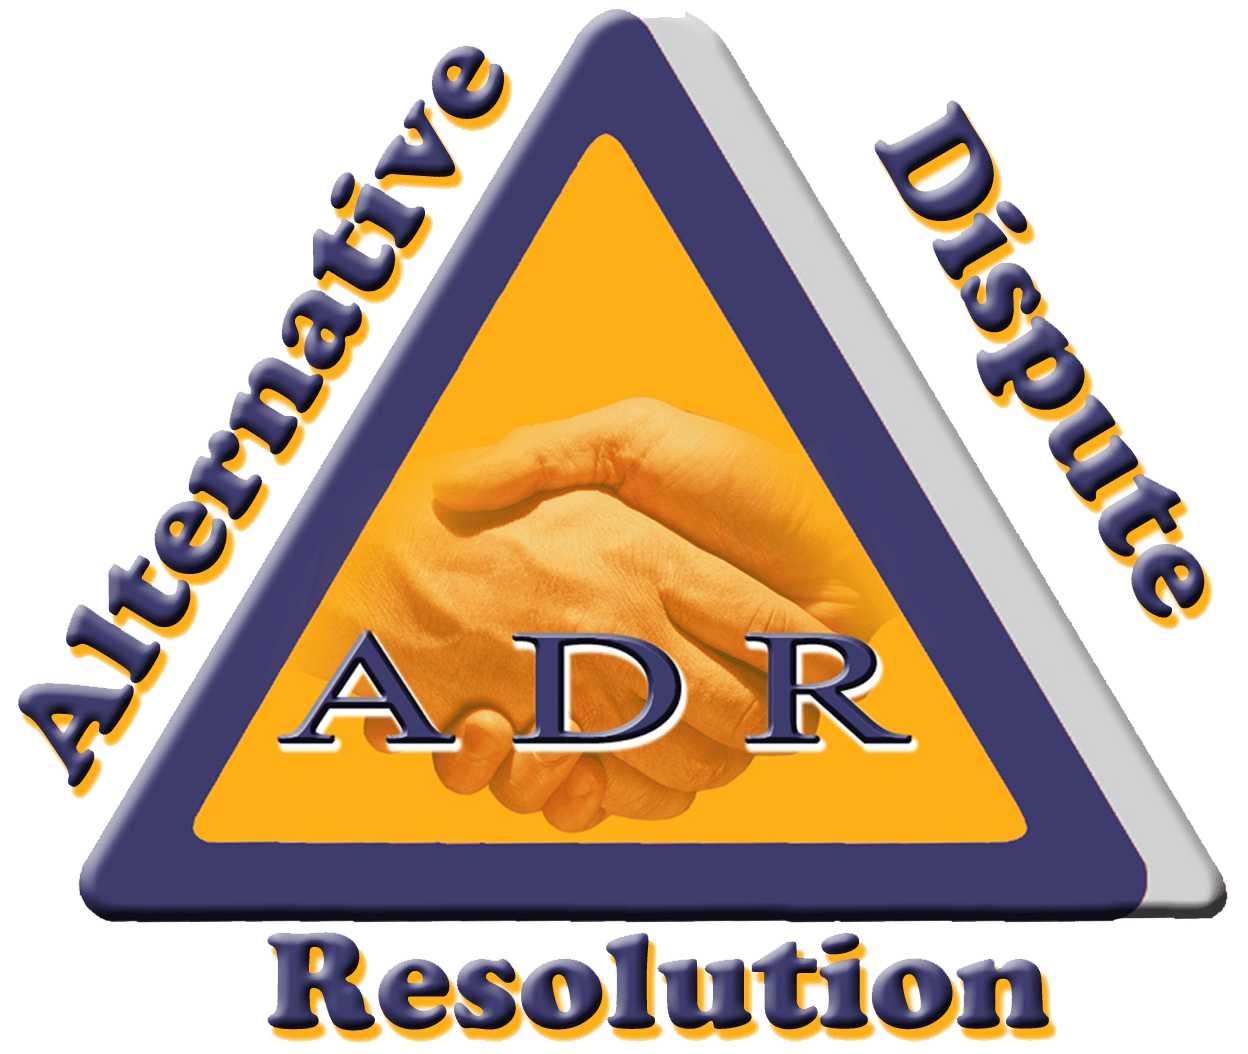 ADR: AUXILIARY FOR LITIGATION IN INDIA